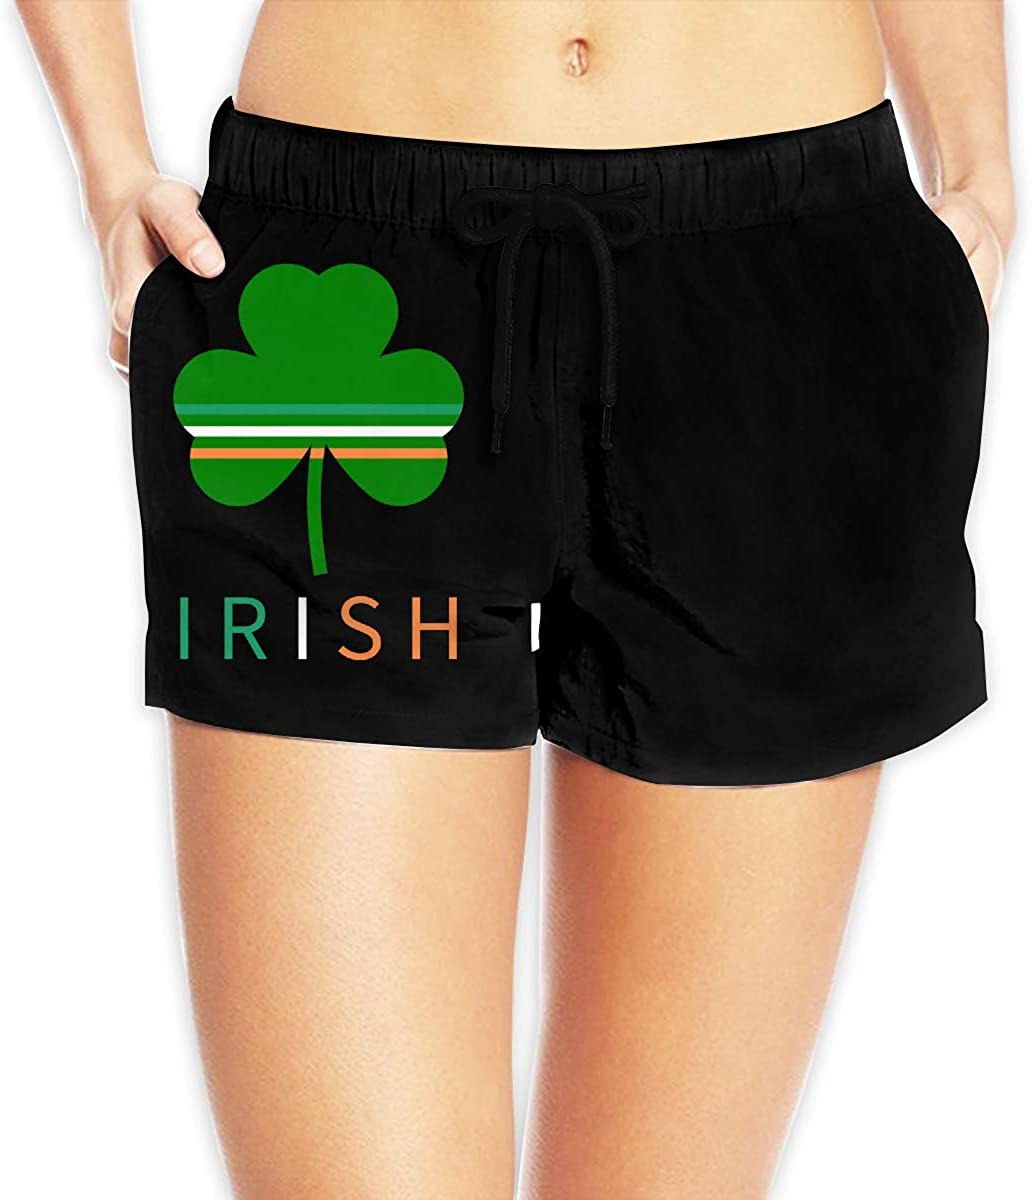 Irish Clover Women's Female Beach Pants Summer Beachwear Board Shorts